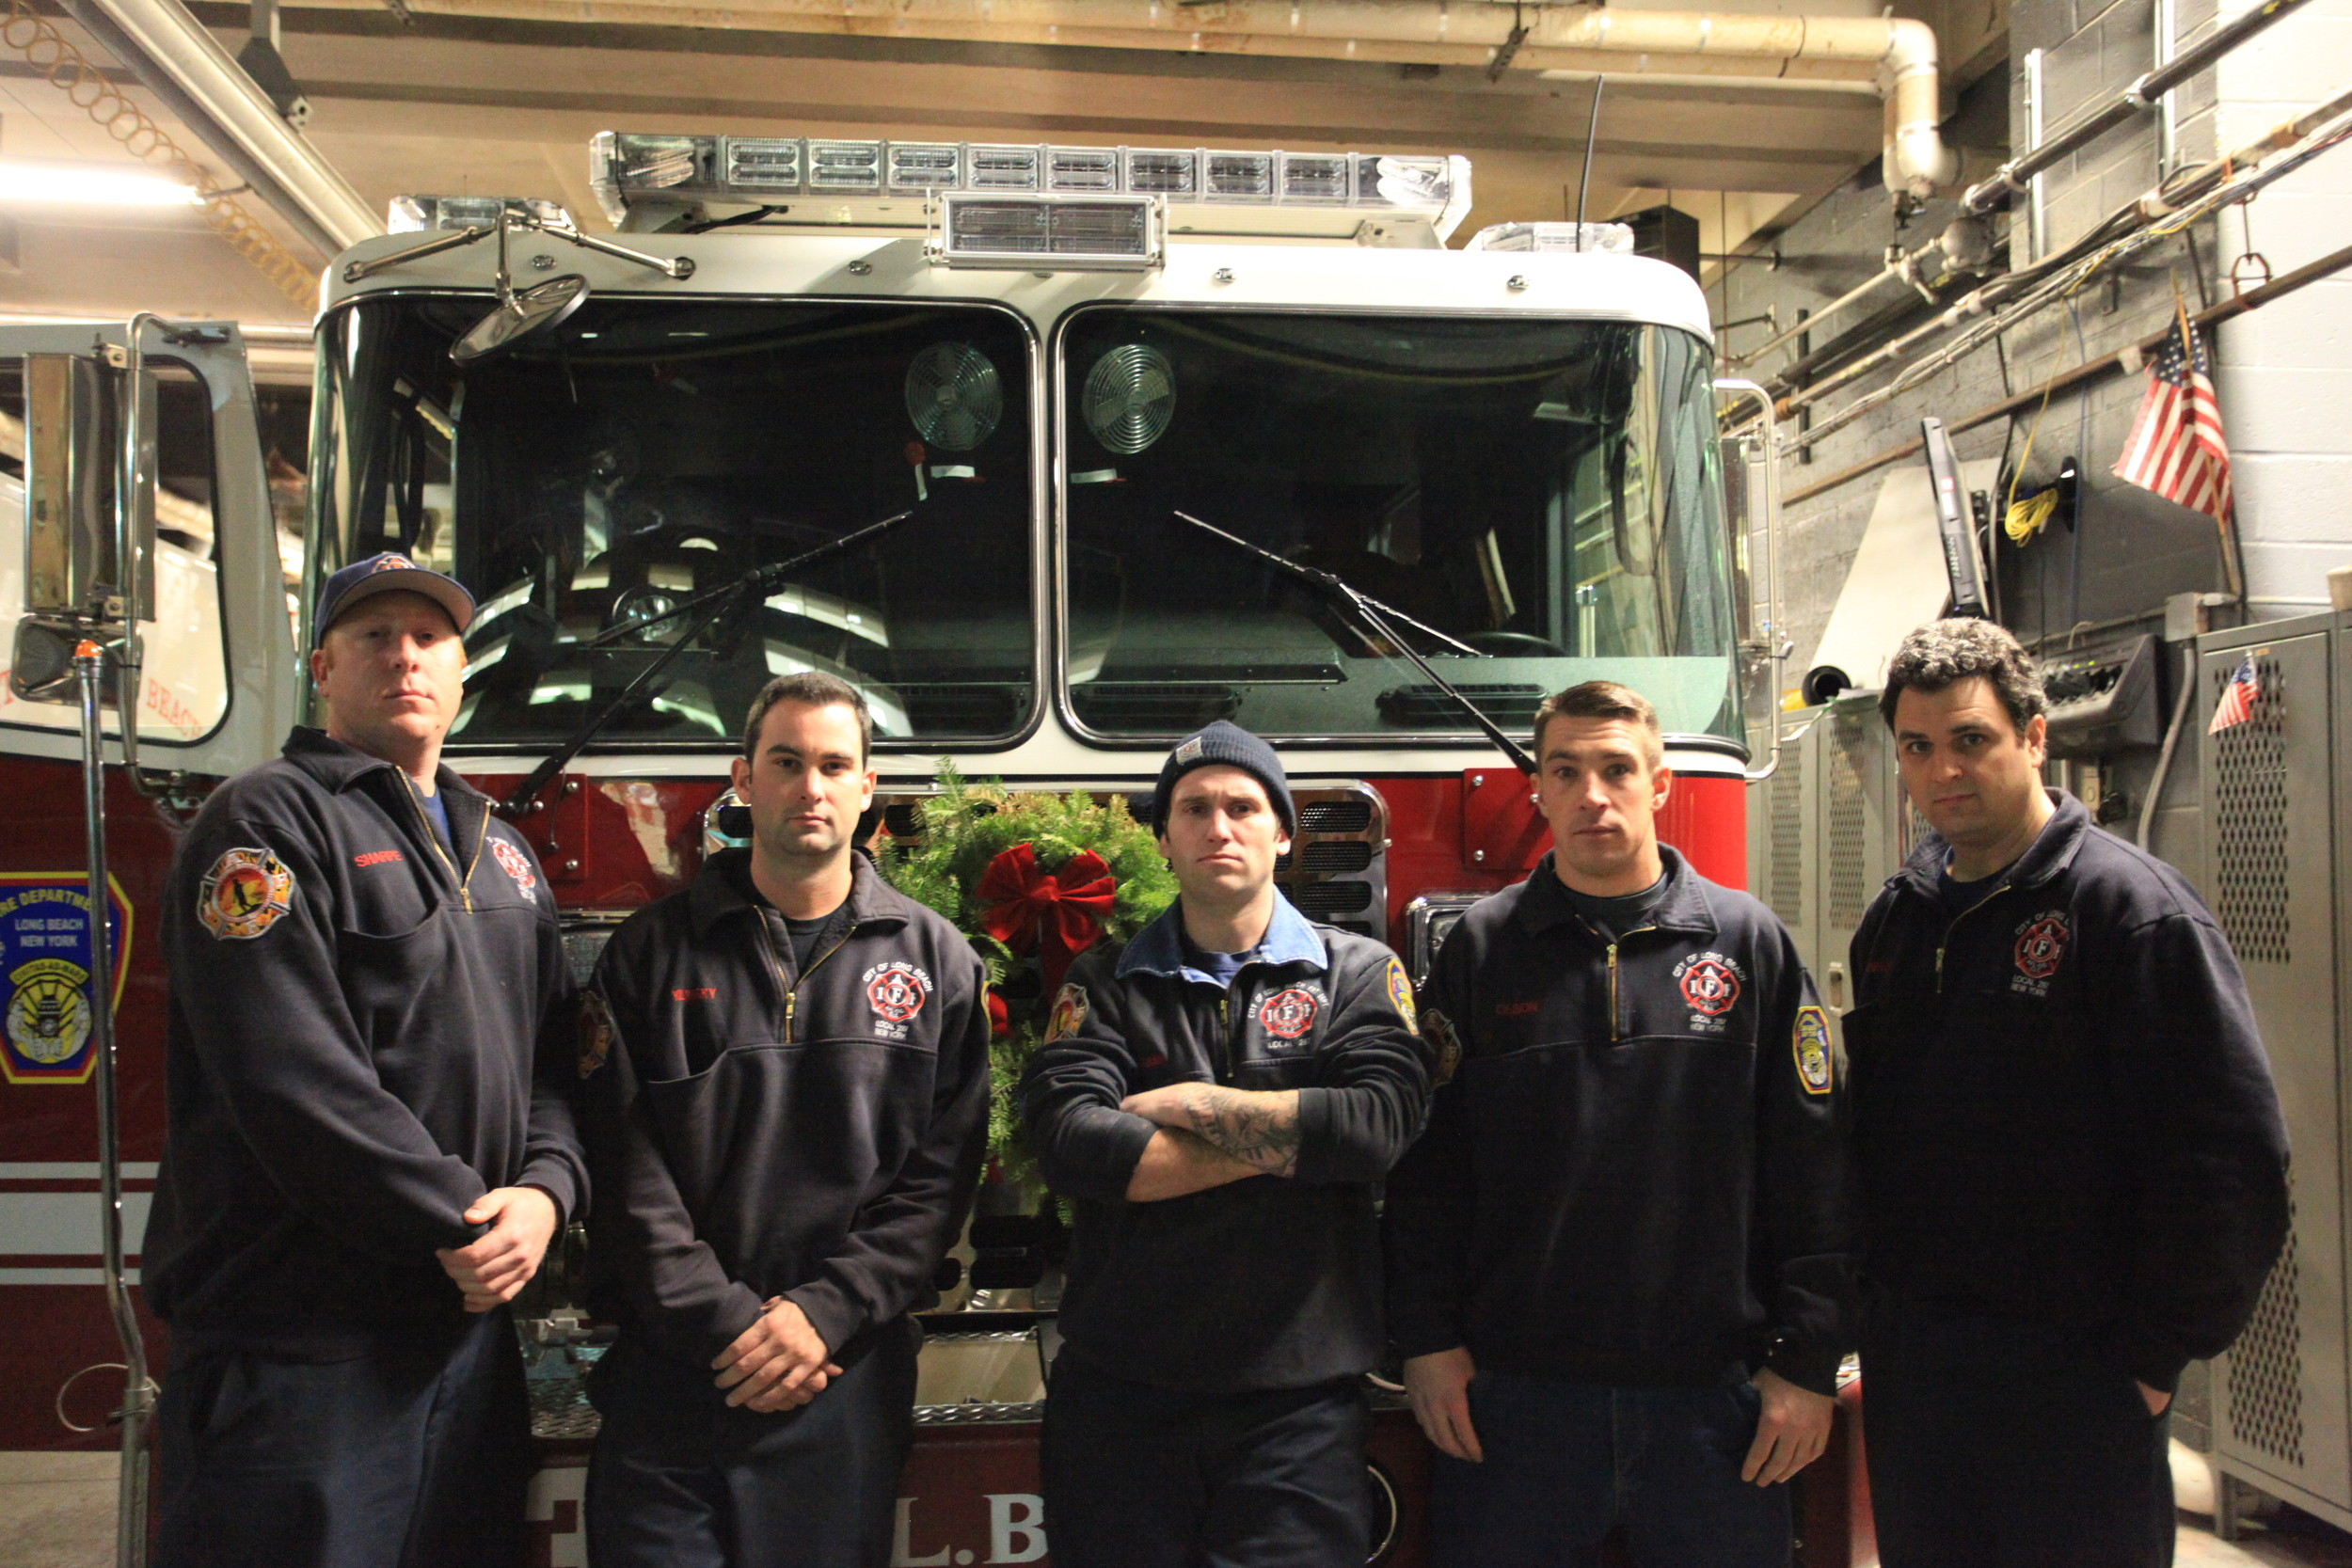 Former Long Beach firefighters Alex Sharpe, far left, Dave Yolinsky, Greg Kavazanjian, Brian Olson, and John Innella in 2014. All but Sharpe, who resigned to join the Nassau County Police Department, received separation notices in 2015.